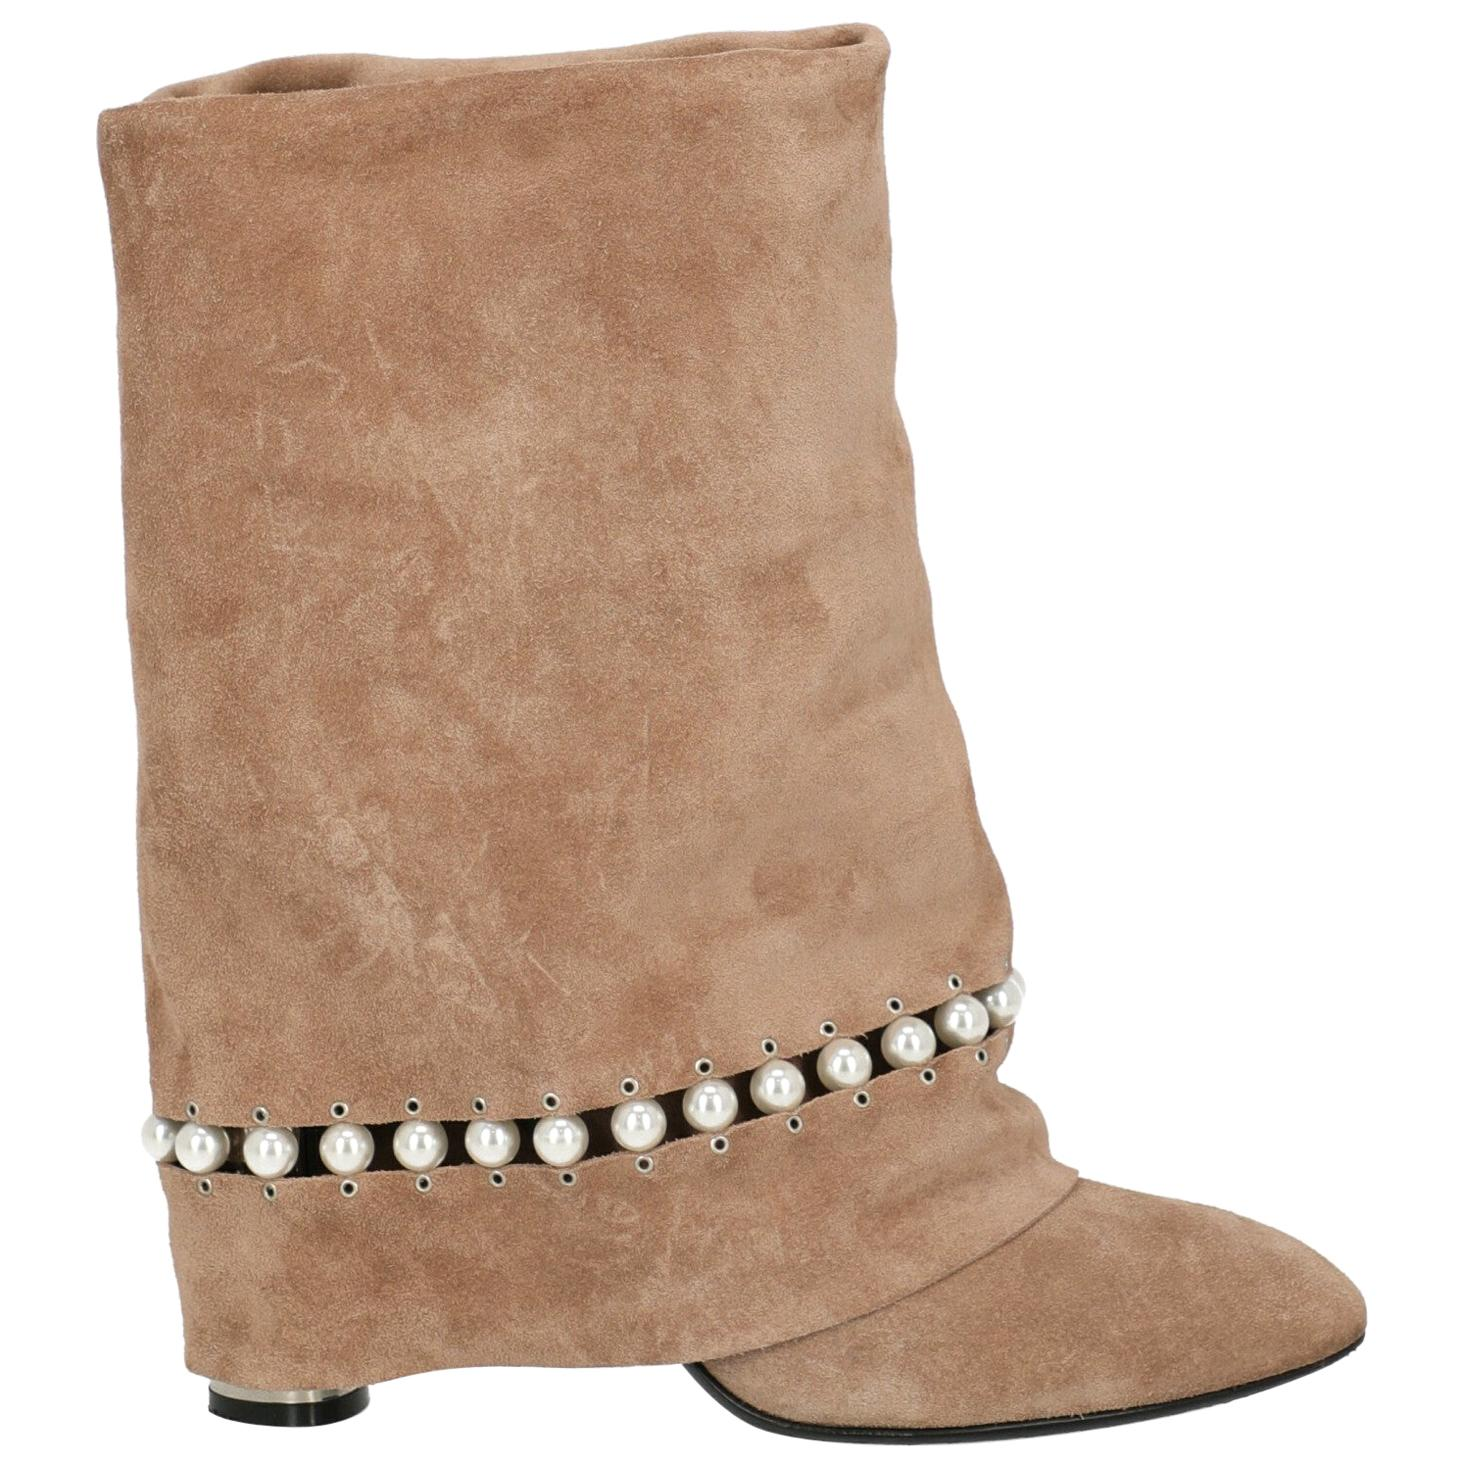 Casadei Woman Ankle boots Beige Leather IT 38